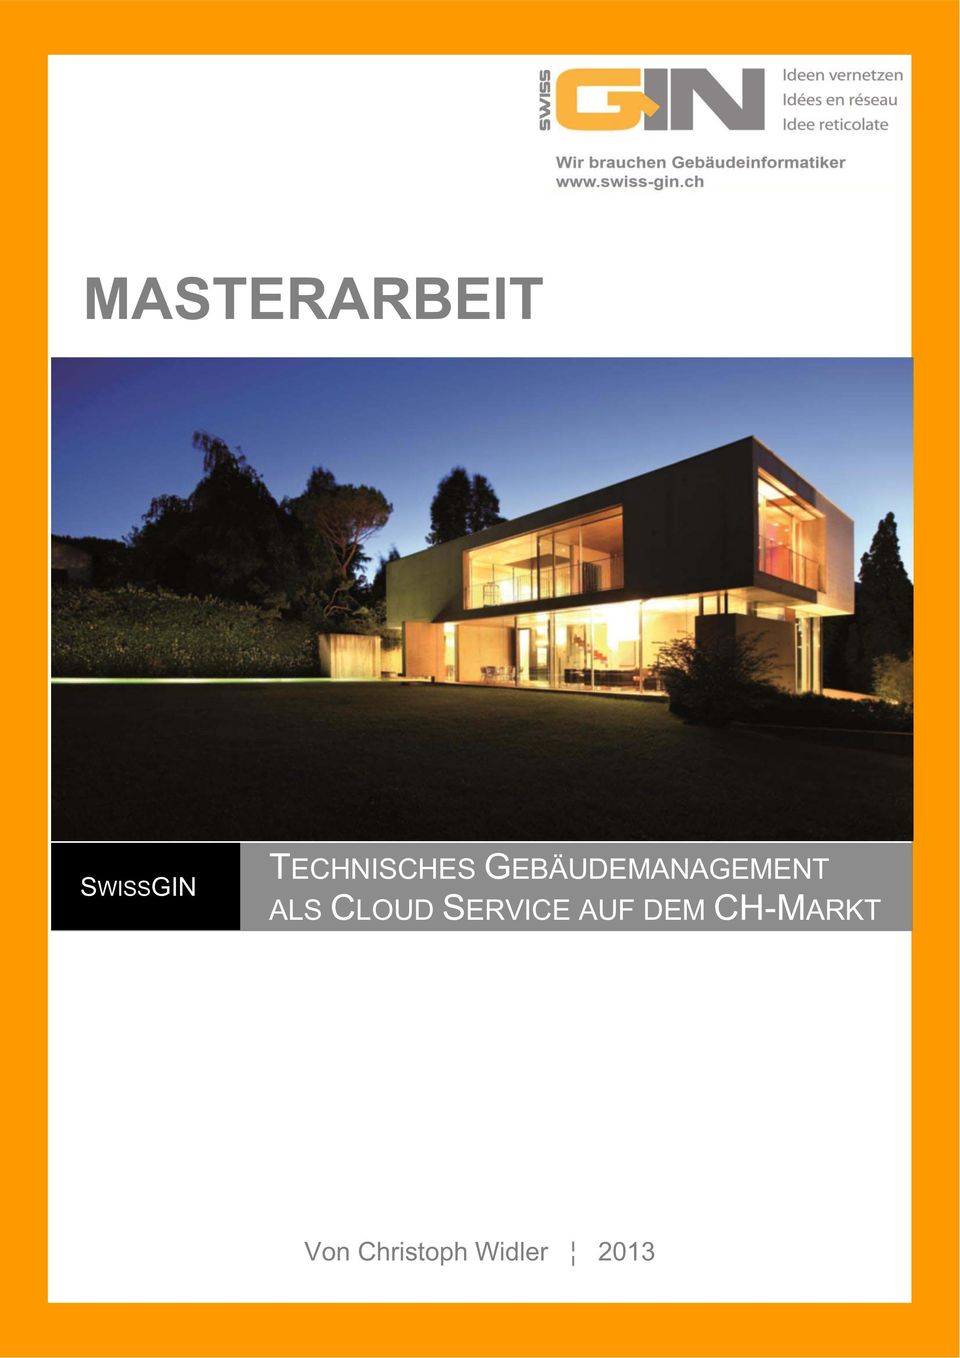 GEBÄUDEMANAGEMENT ALS CLOUD